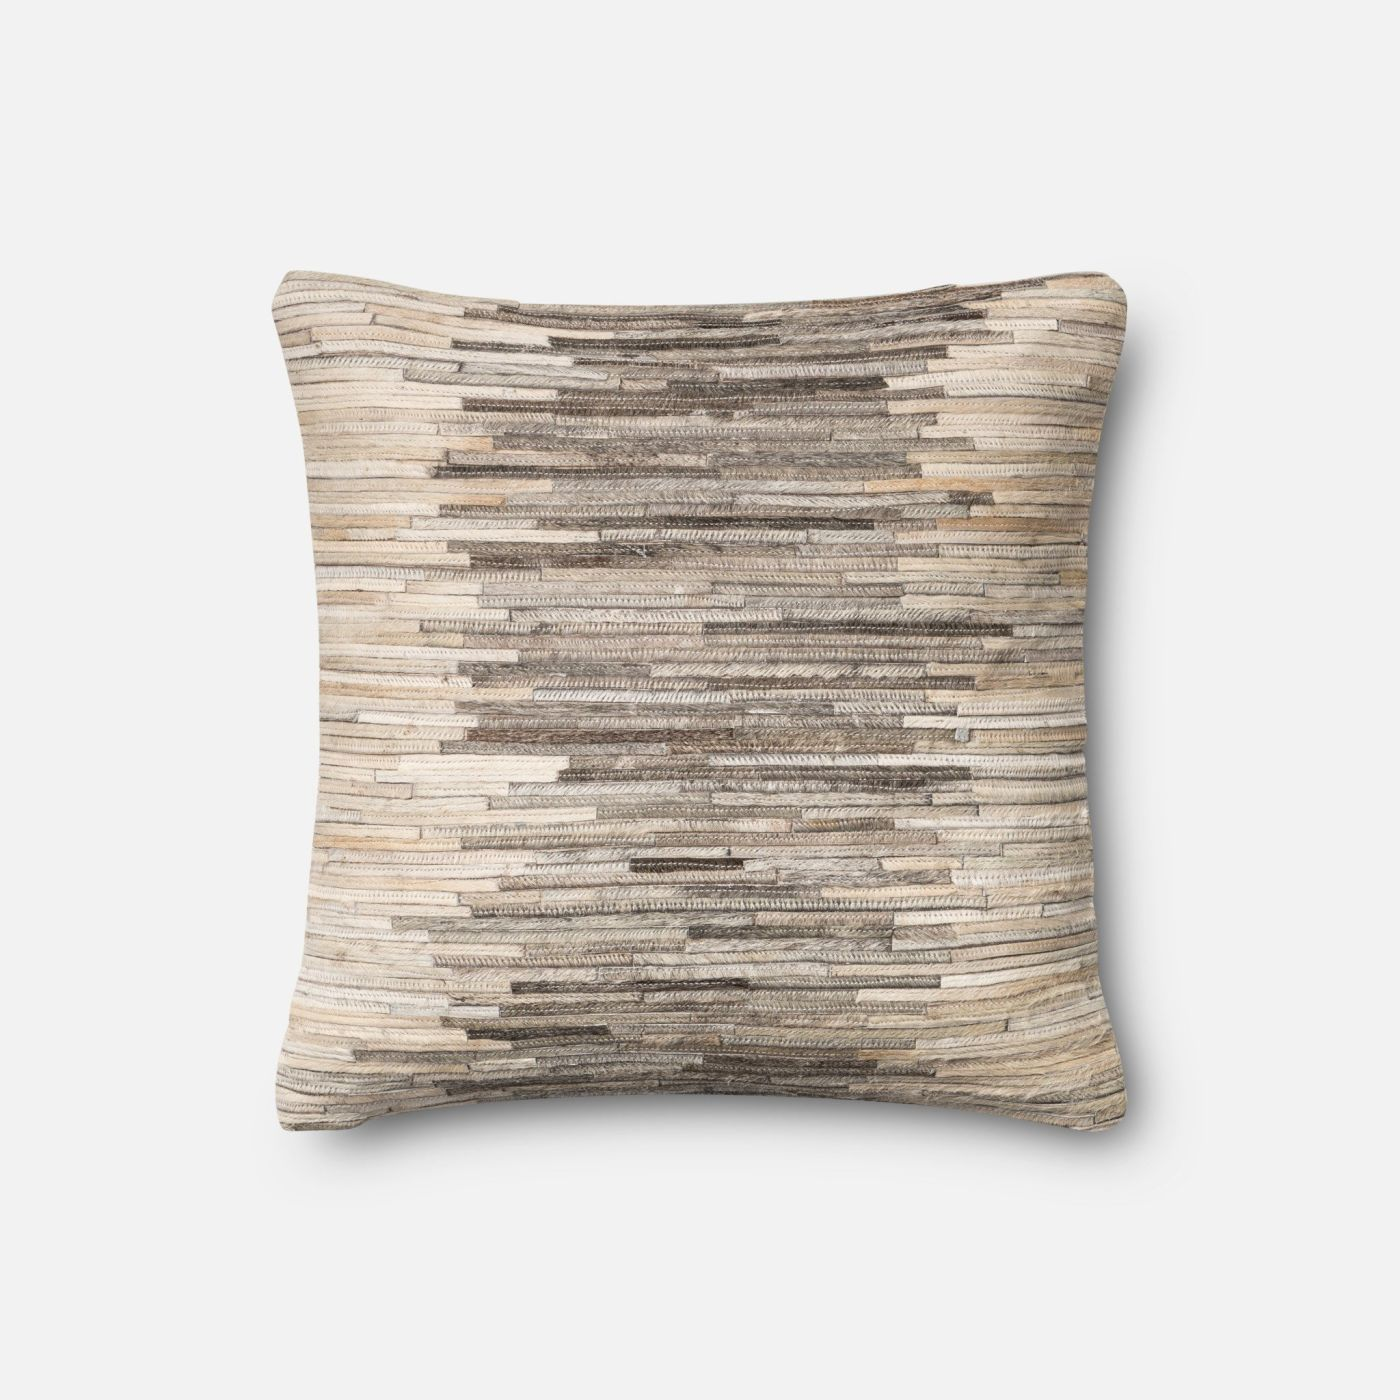 Loloi Rugs Loloi Grey / Beige Decorative Throw Pillow (P0383) DSETP0383GYBEPIL1. Only $109.00 at ...